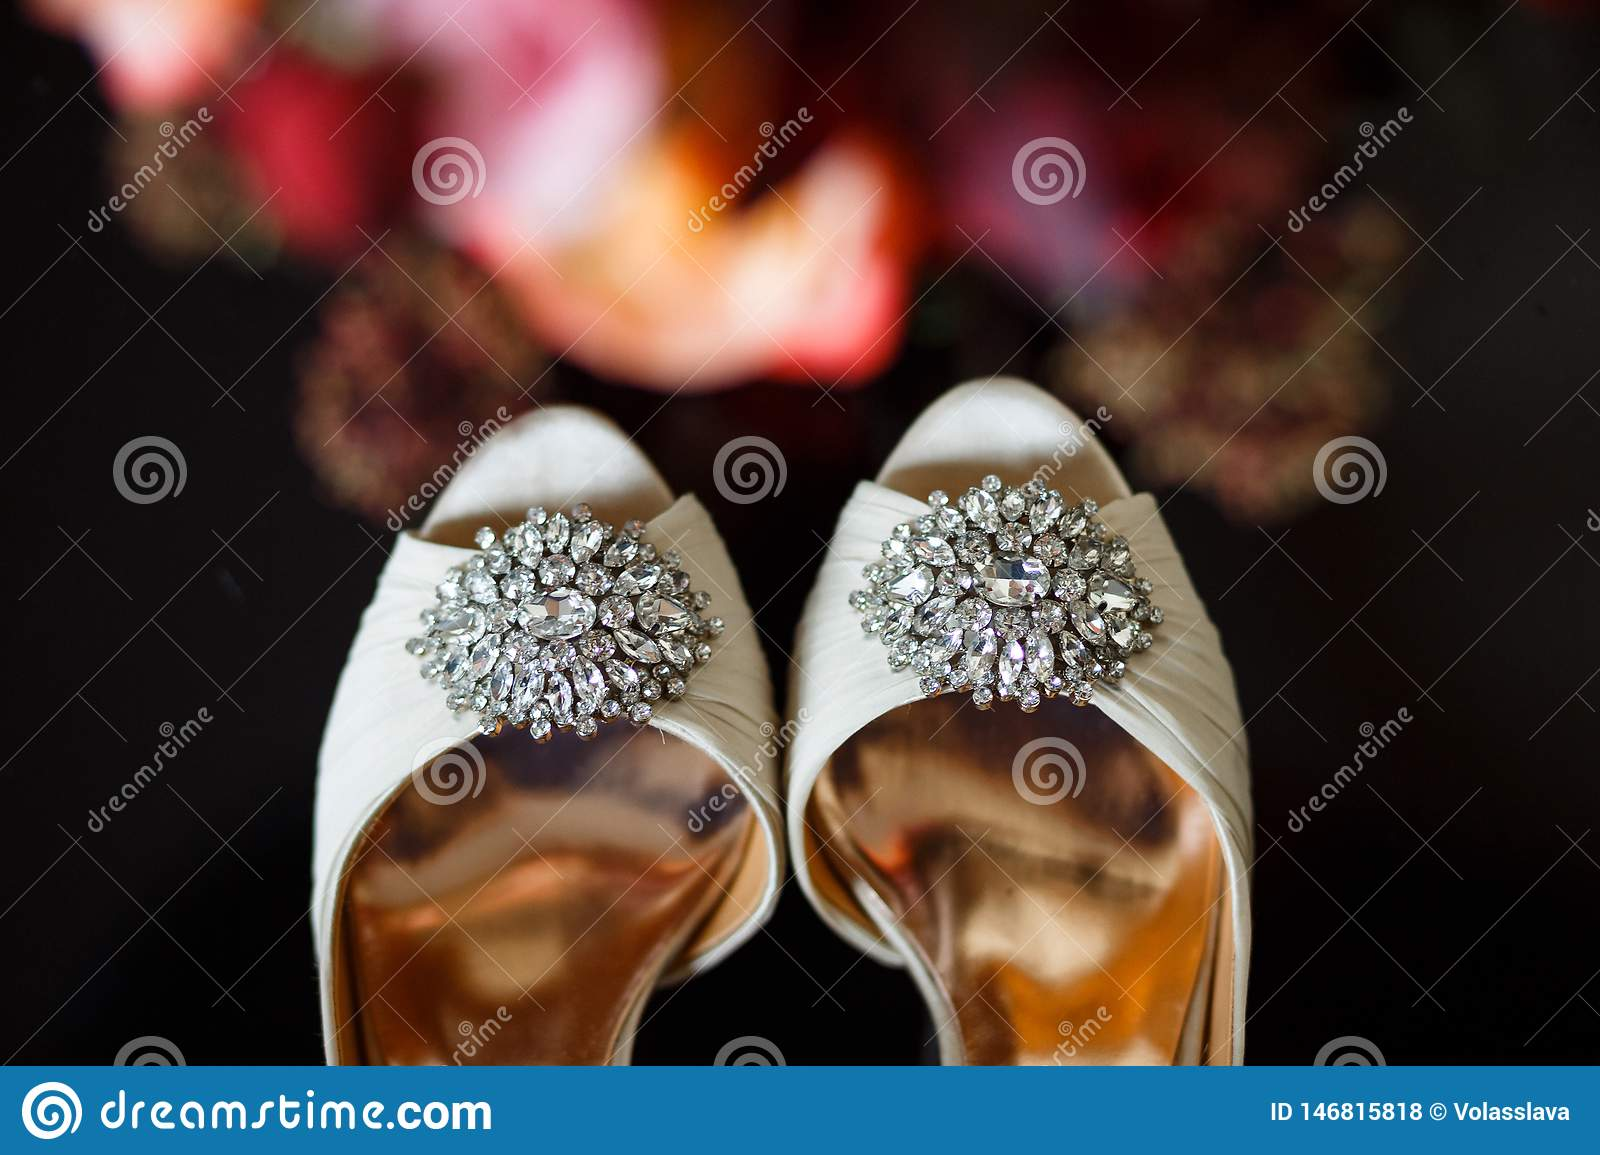 Buckles with crystals on wedding shoes